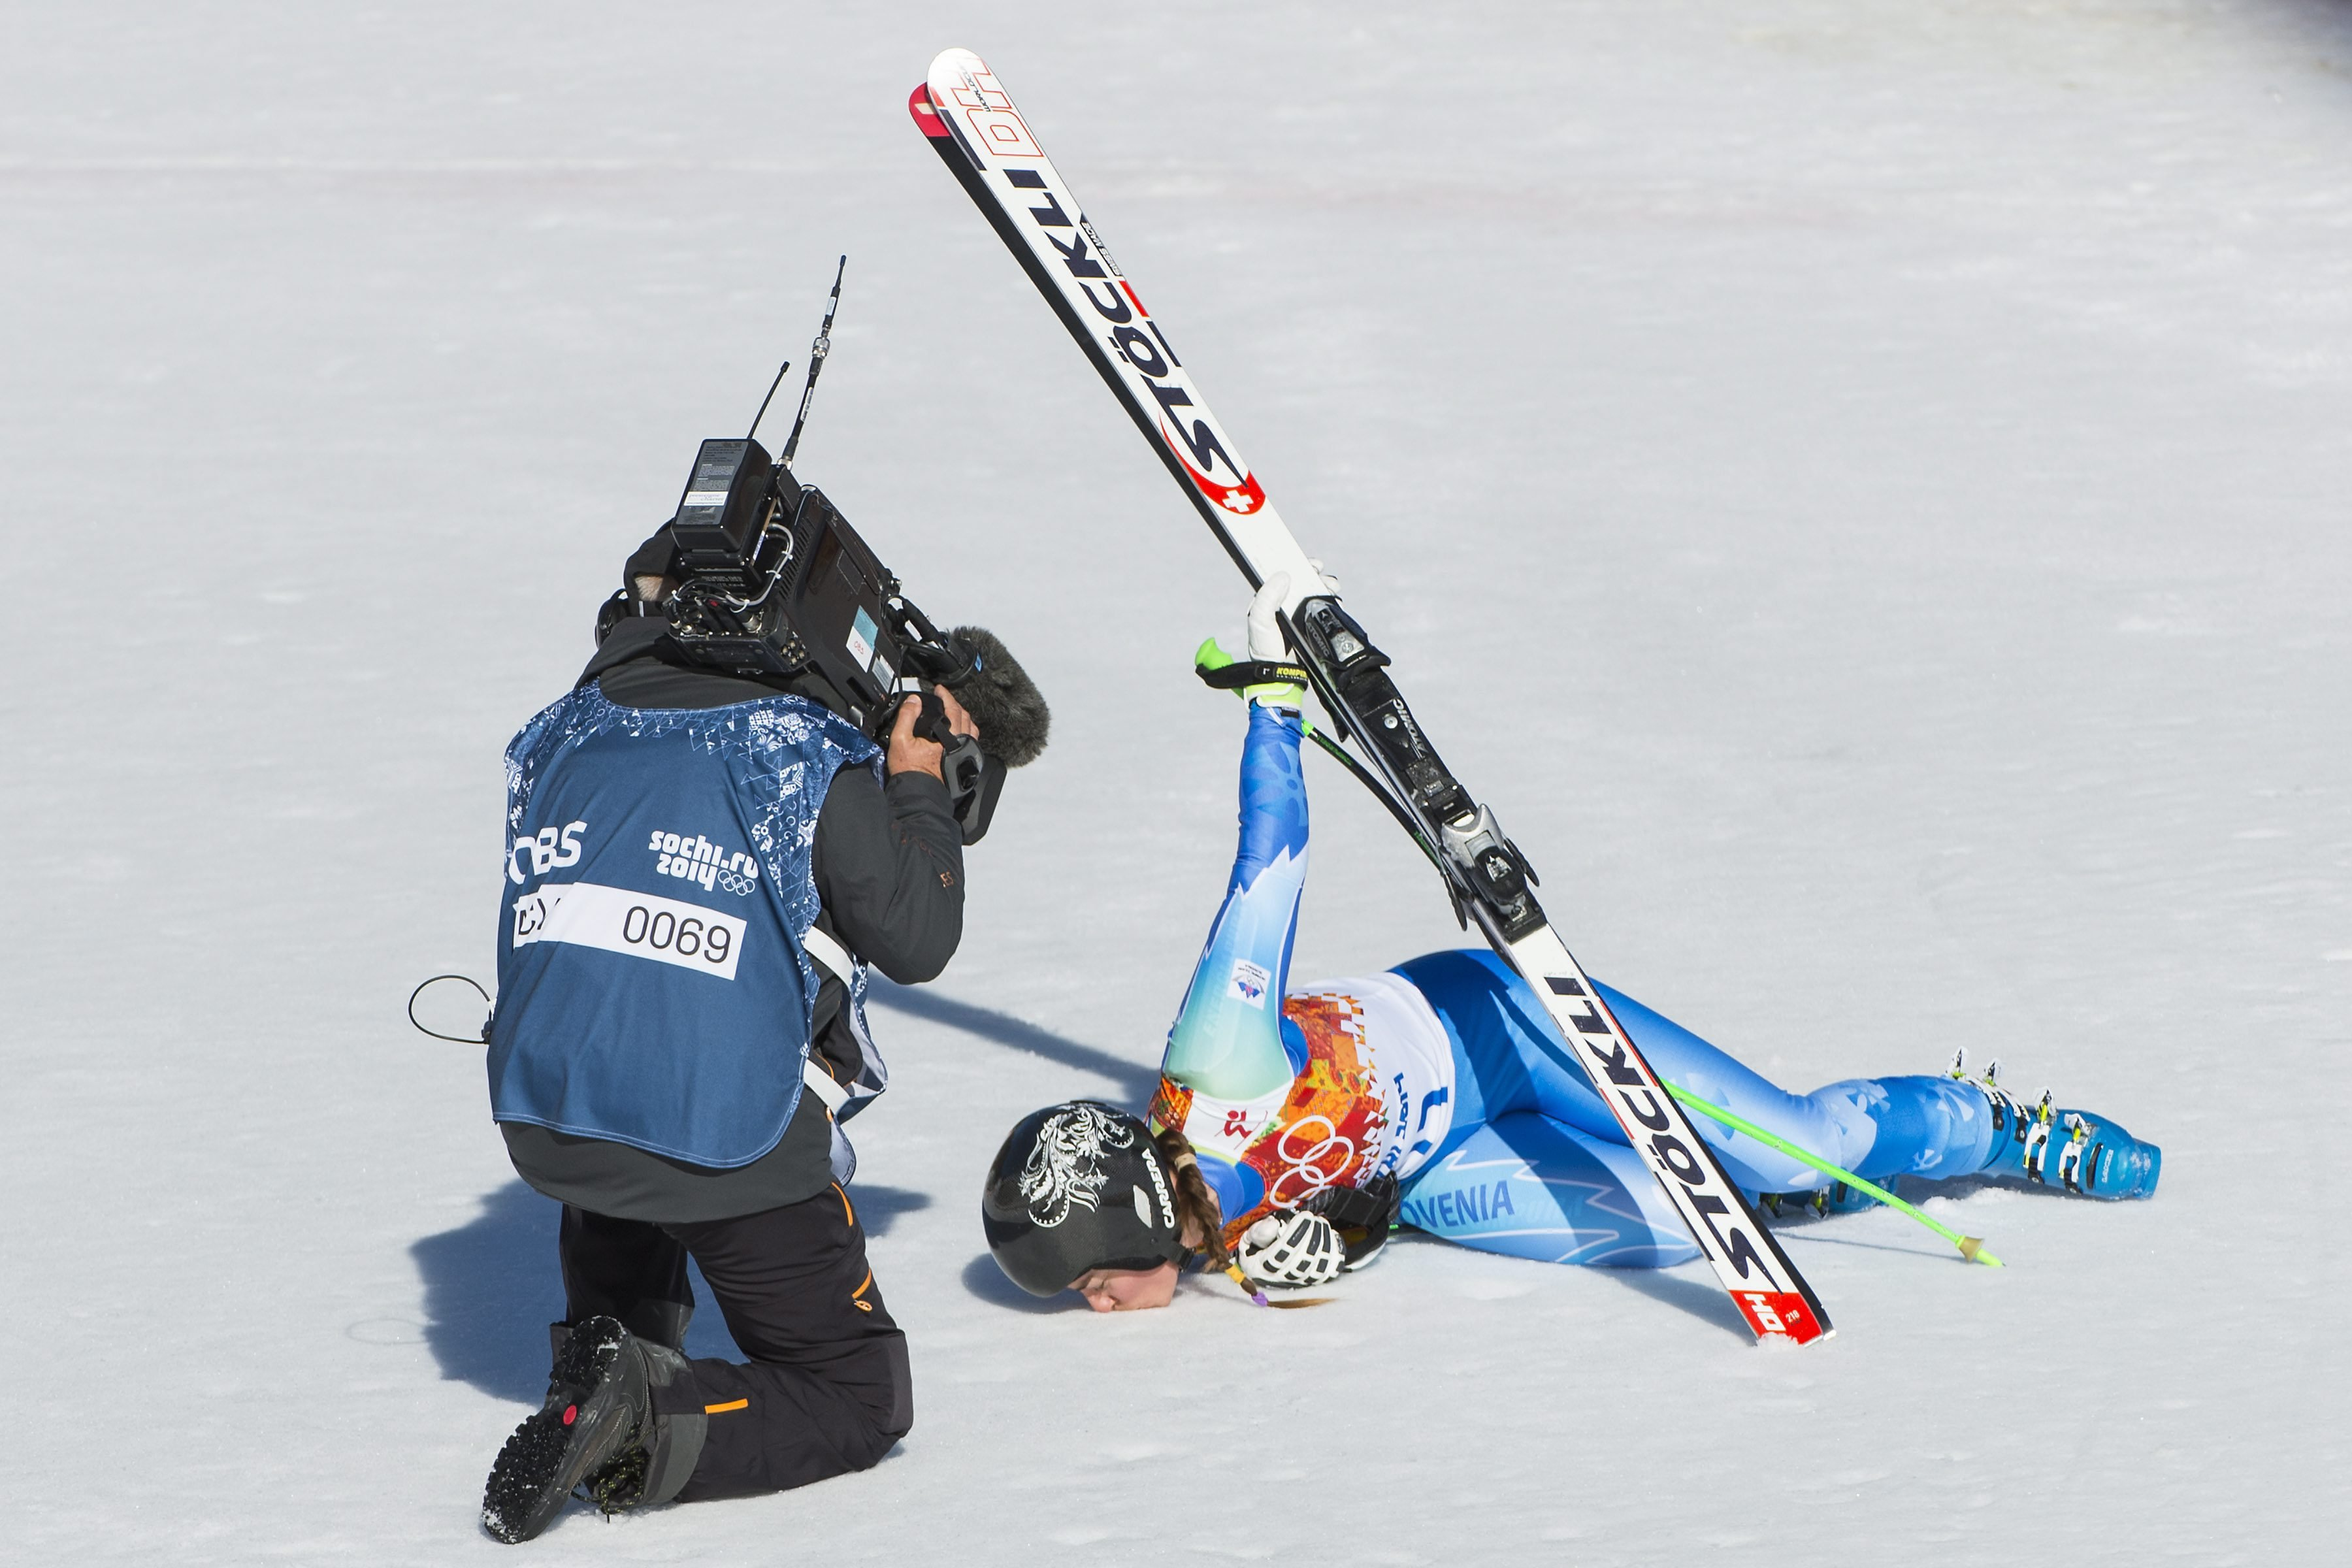 Tina Maze of Slovenia kisses the snow in the finish area during the Women's Alpine Skiing Downhill race in Rosa Khutor Alpine Center.